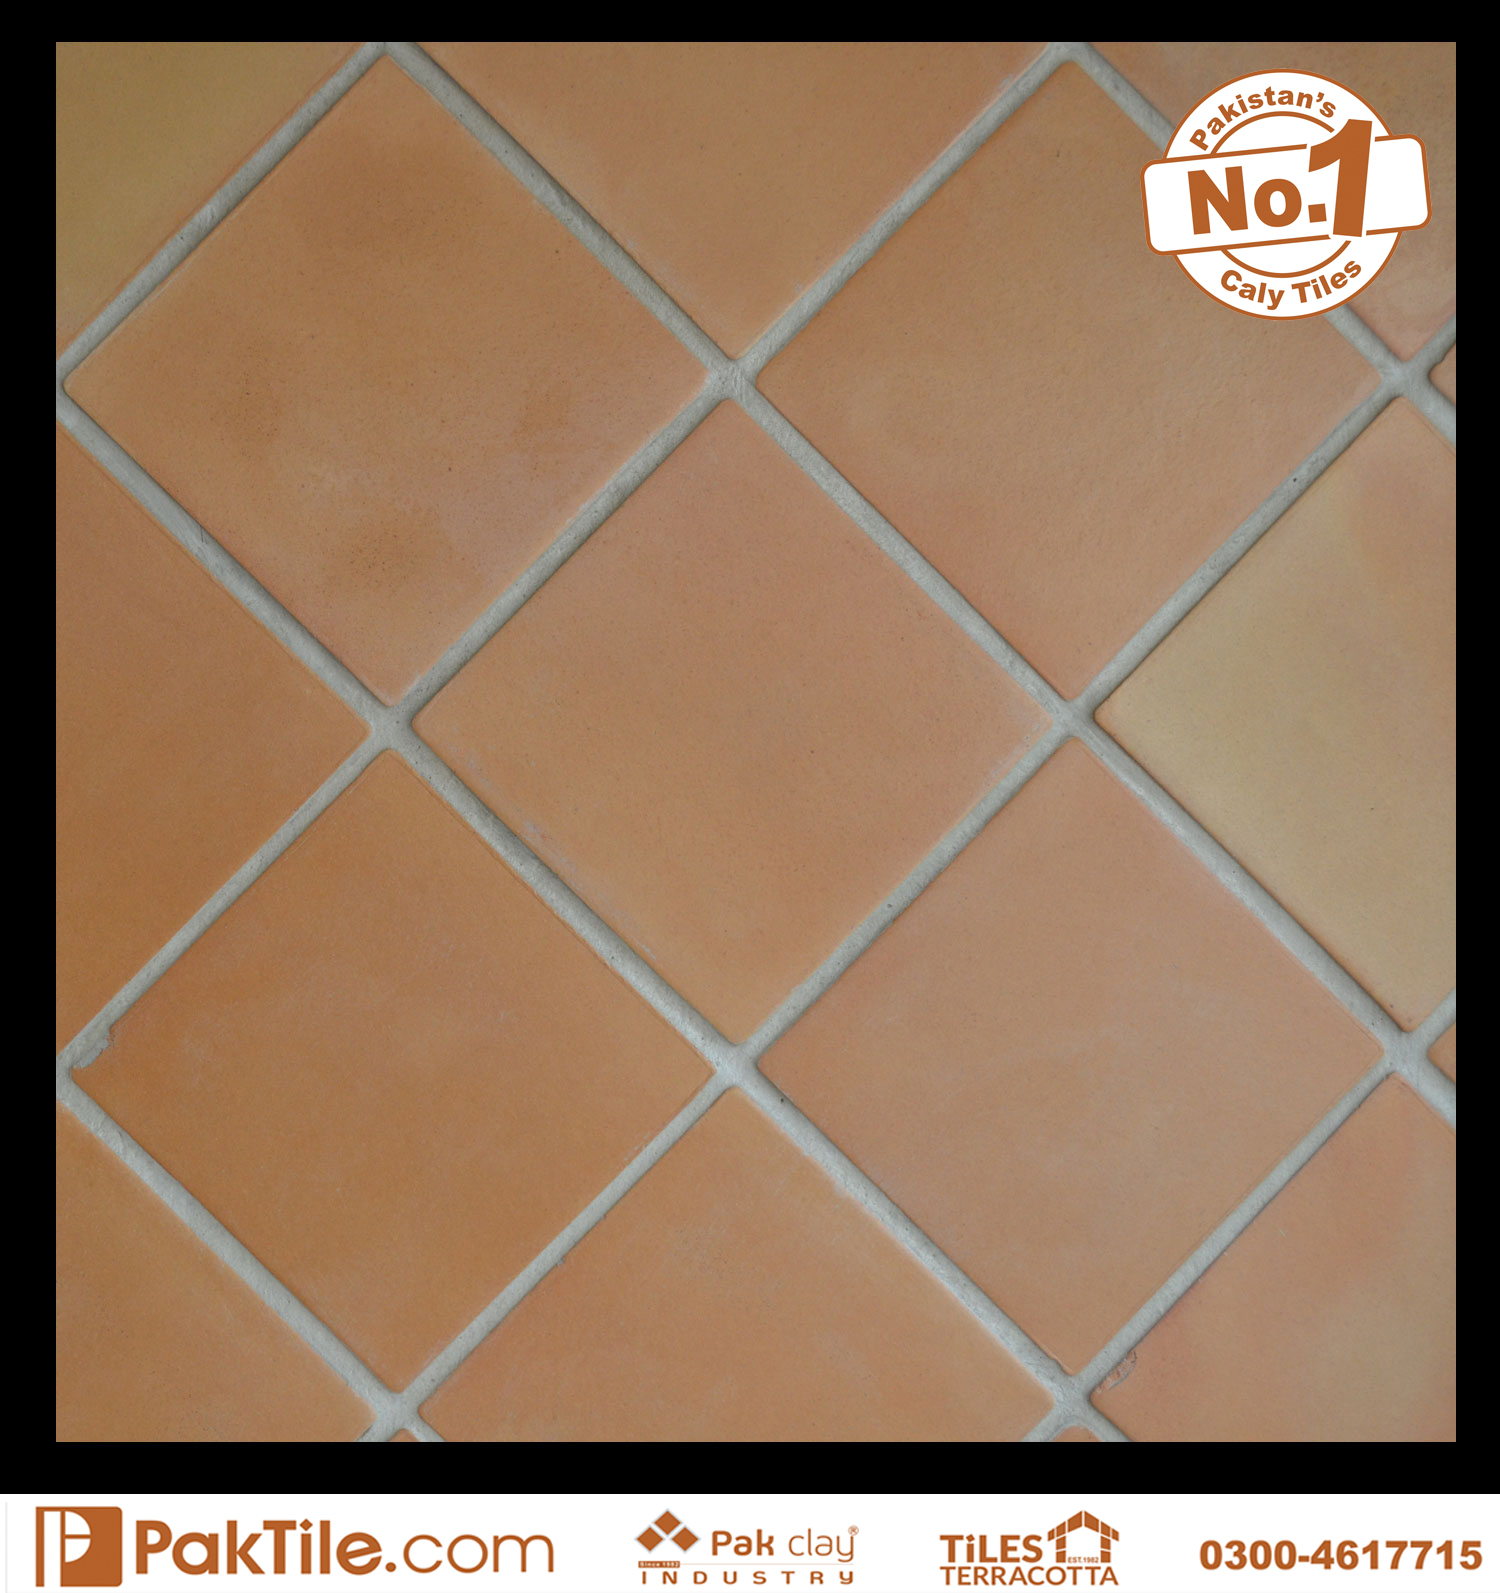 Natural Colors Terracotta Kitchen Floor Tiles Square Design Size 8x8 inch Images in Pakistan